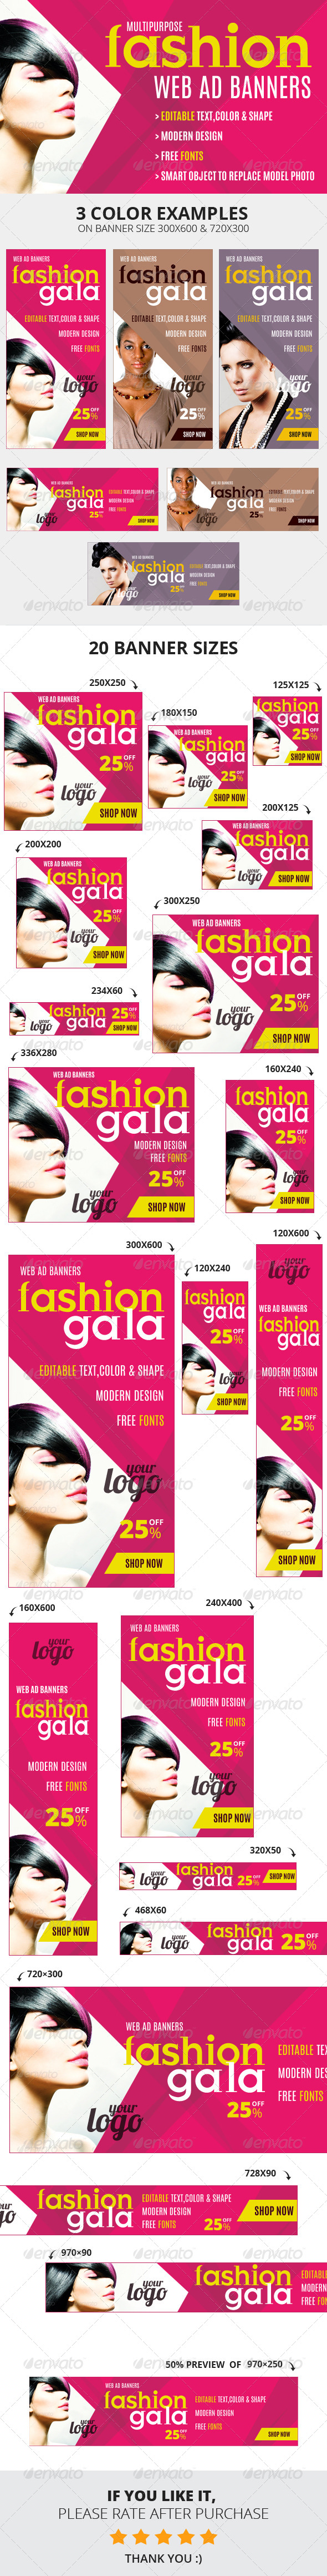 Fashion Gala Web Ad Banners - Multipurpose - Banners & Ads Web Elements